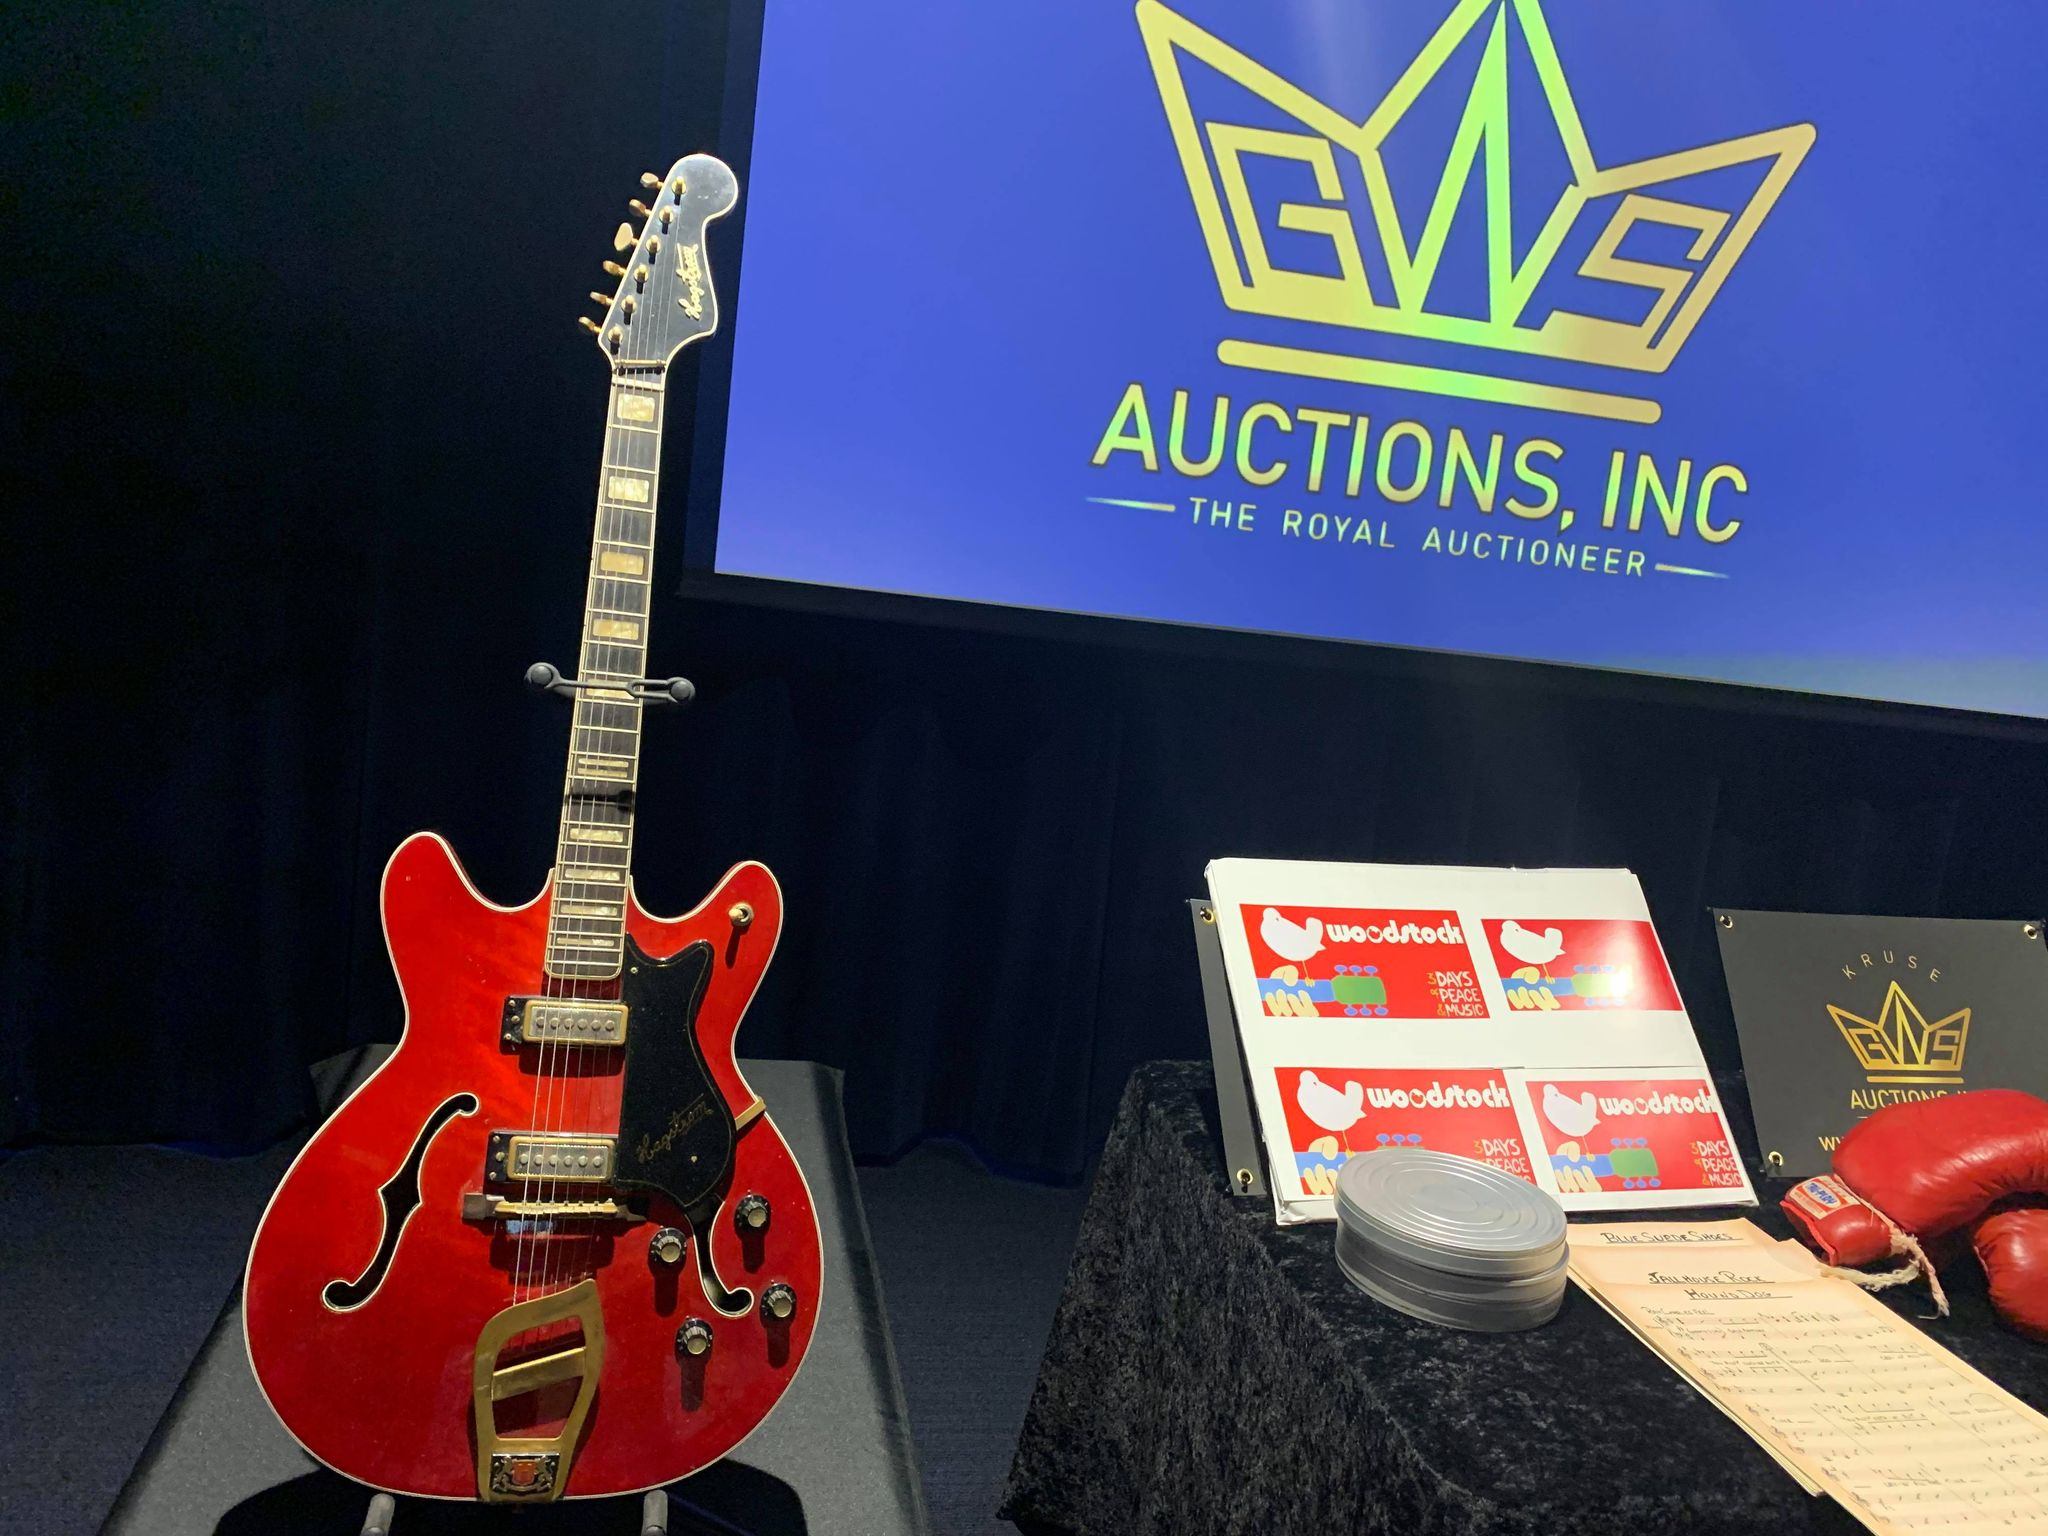 Kruse GWS AuctionsKruse GWS Auctions: Elvis Presley Comeback TV Special guitar